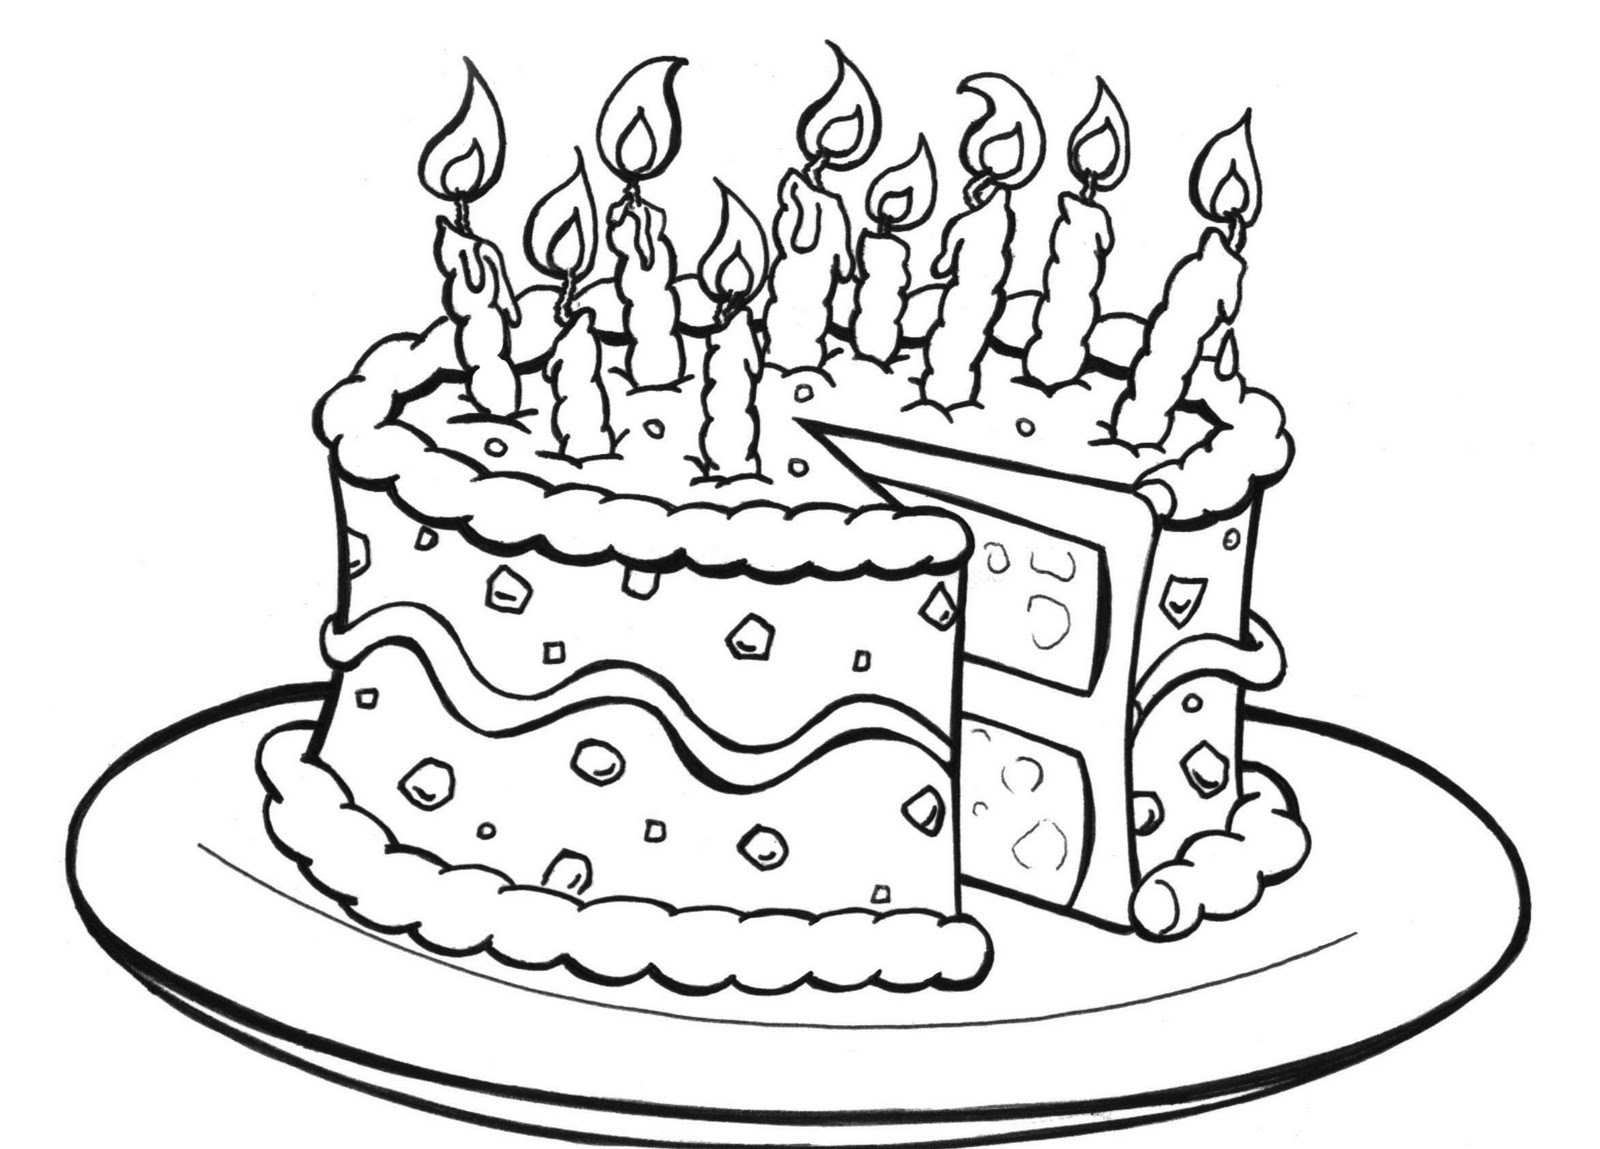 free birthday coloring pages - birthday cake coloring pages